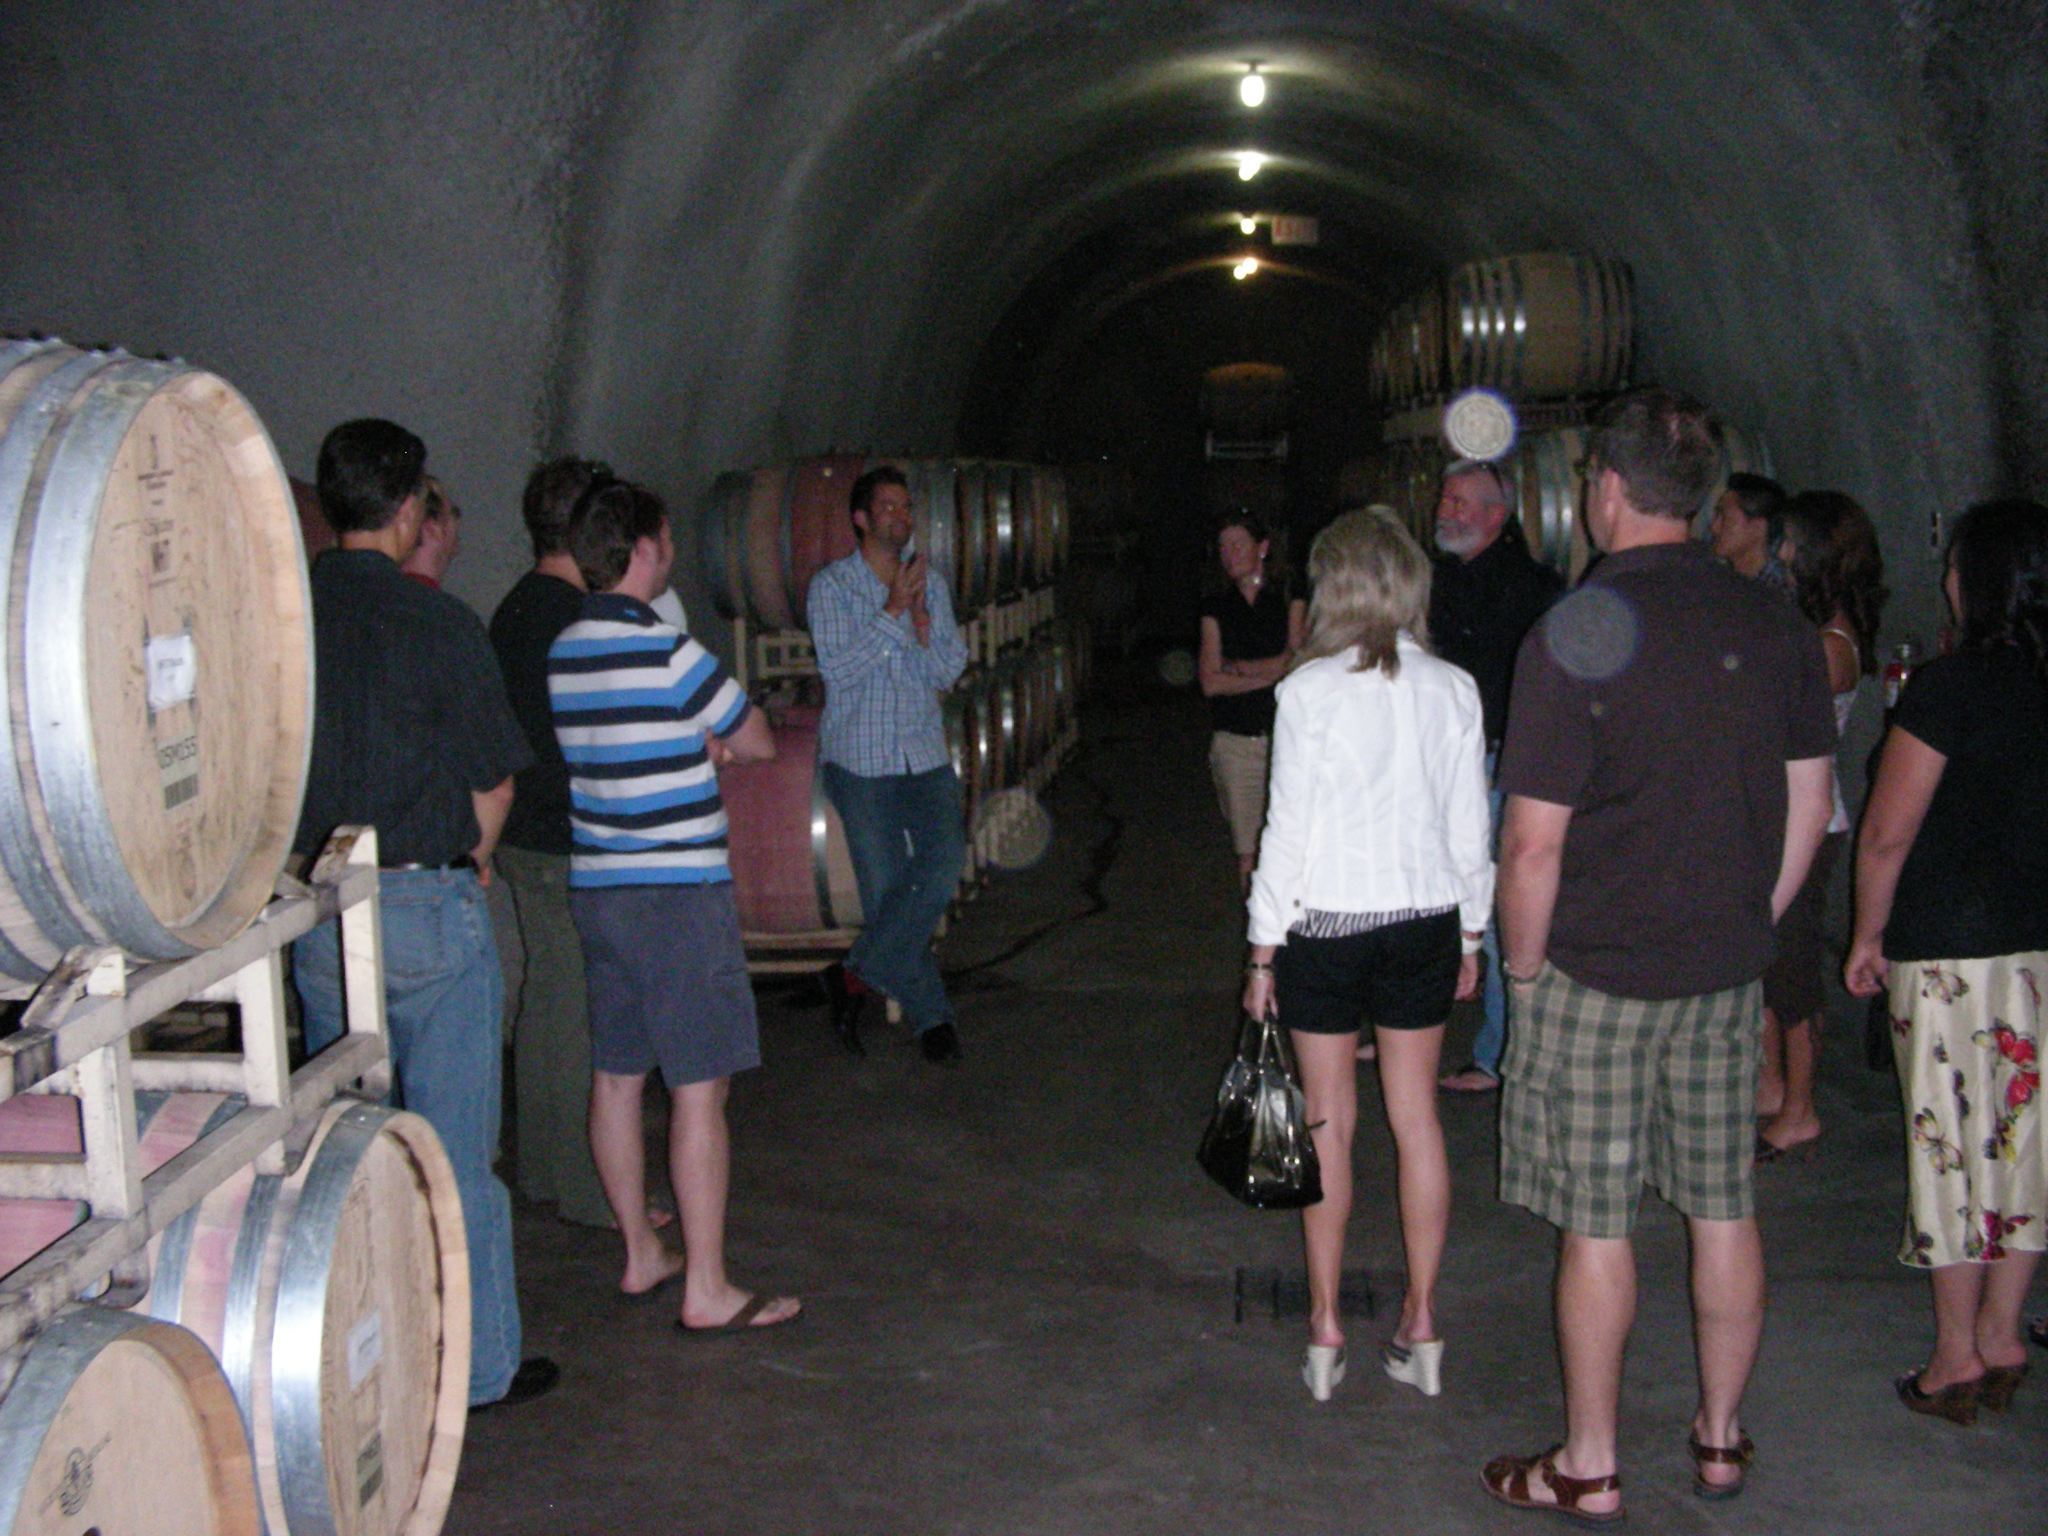 Inside the wine cellar caves at Miner Family Winery